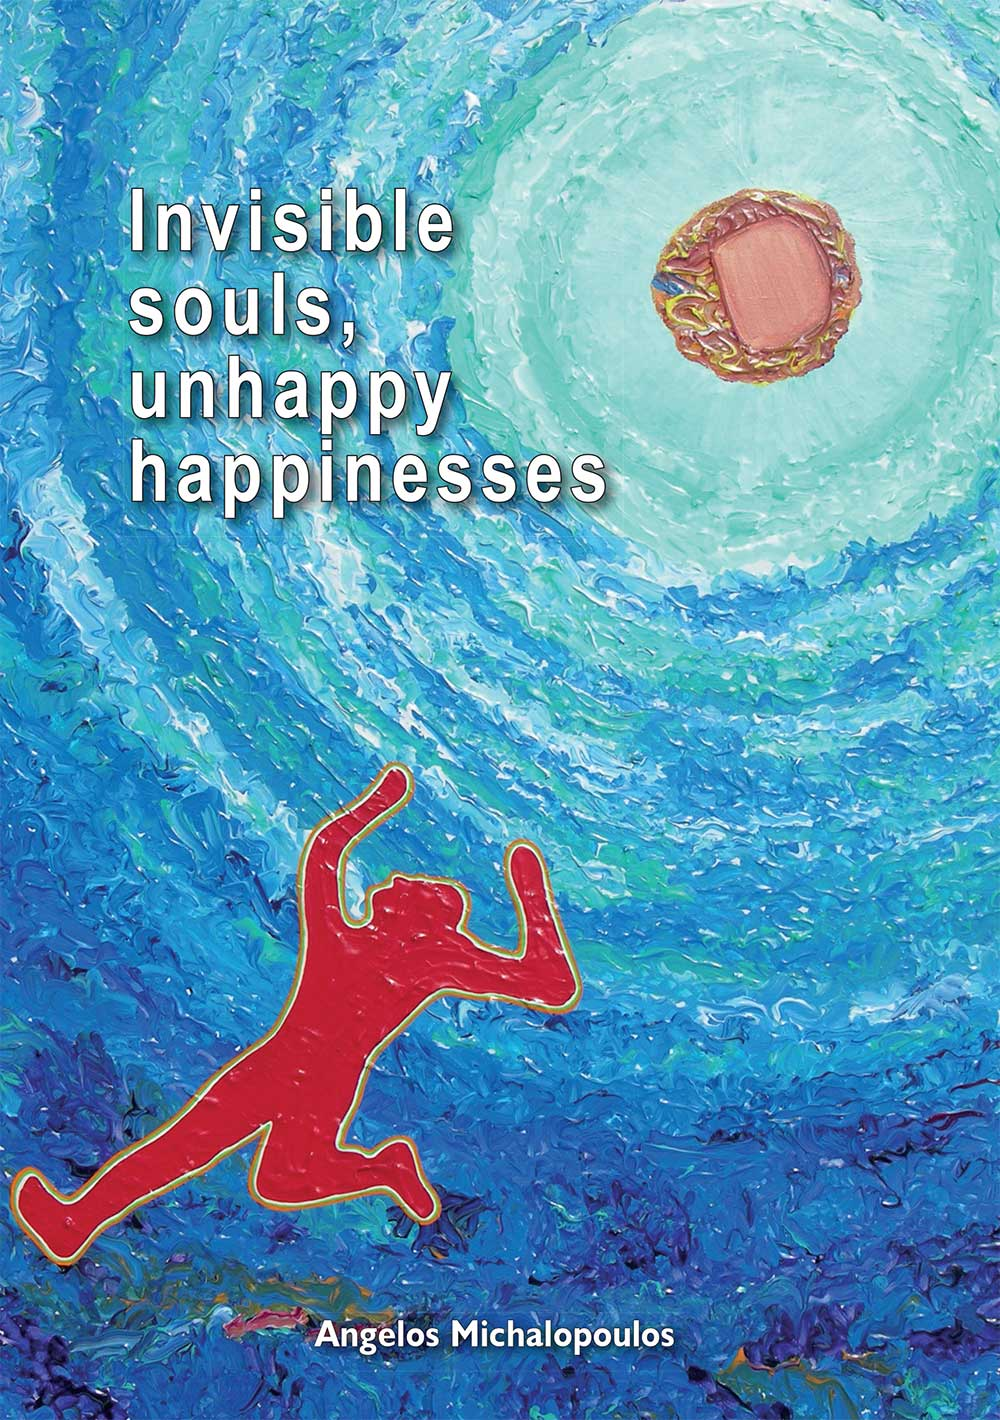 Invisible souls, unhappy happinesses